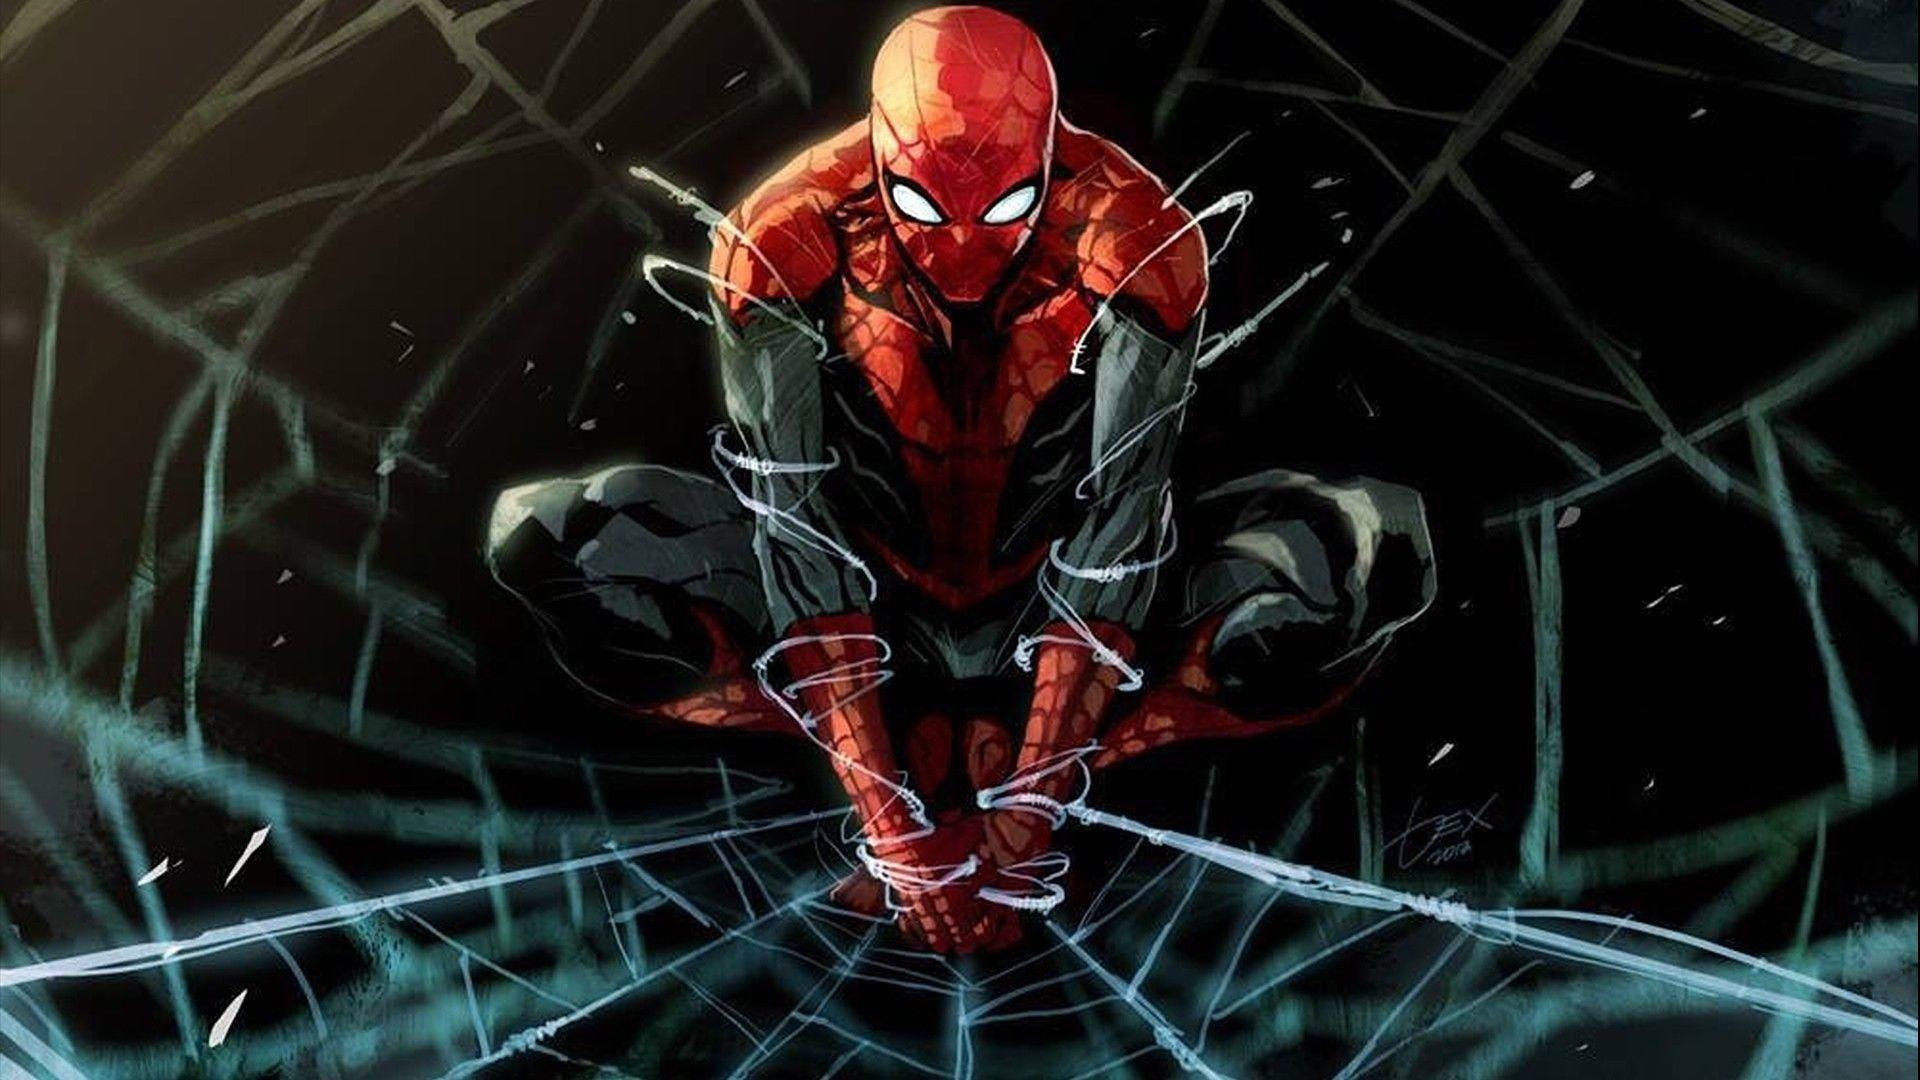 Iron Spider Suit Wallpapers - Wallpaper Cave